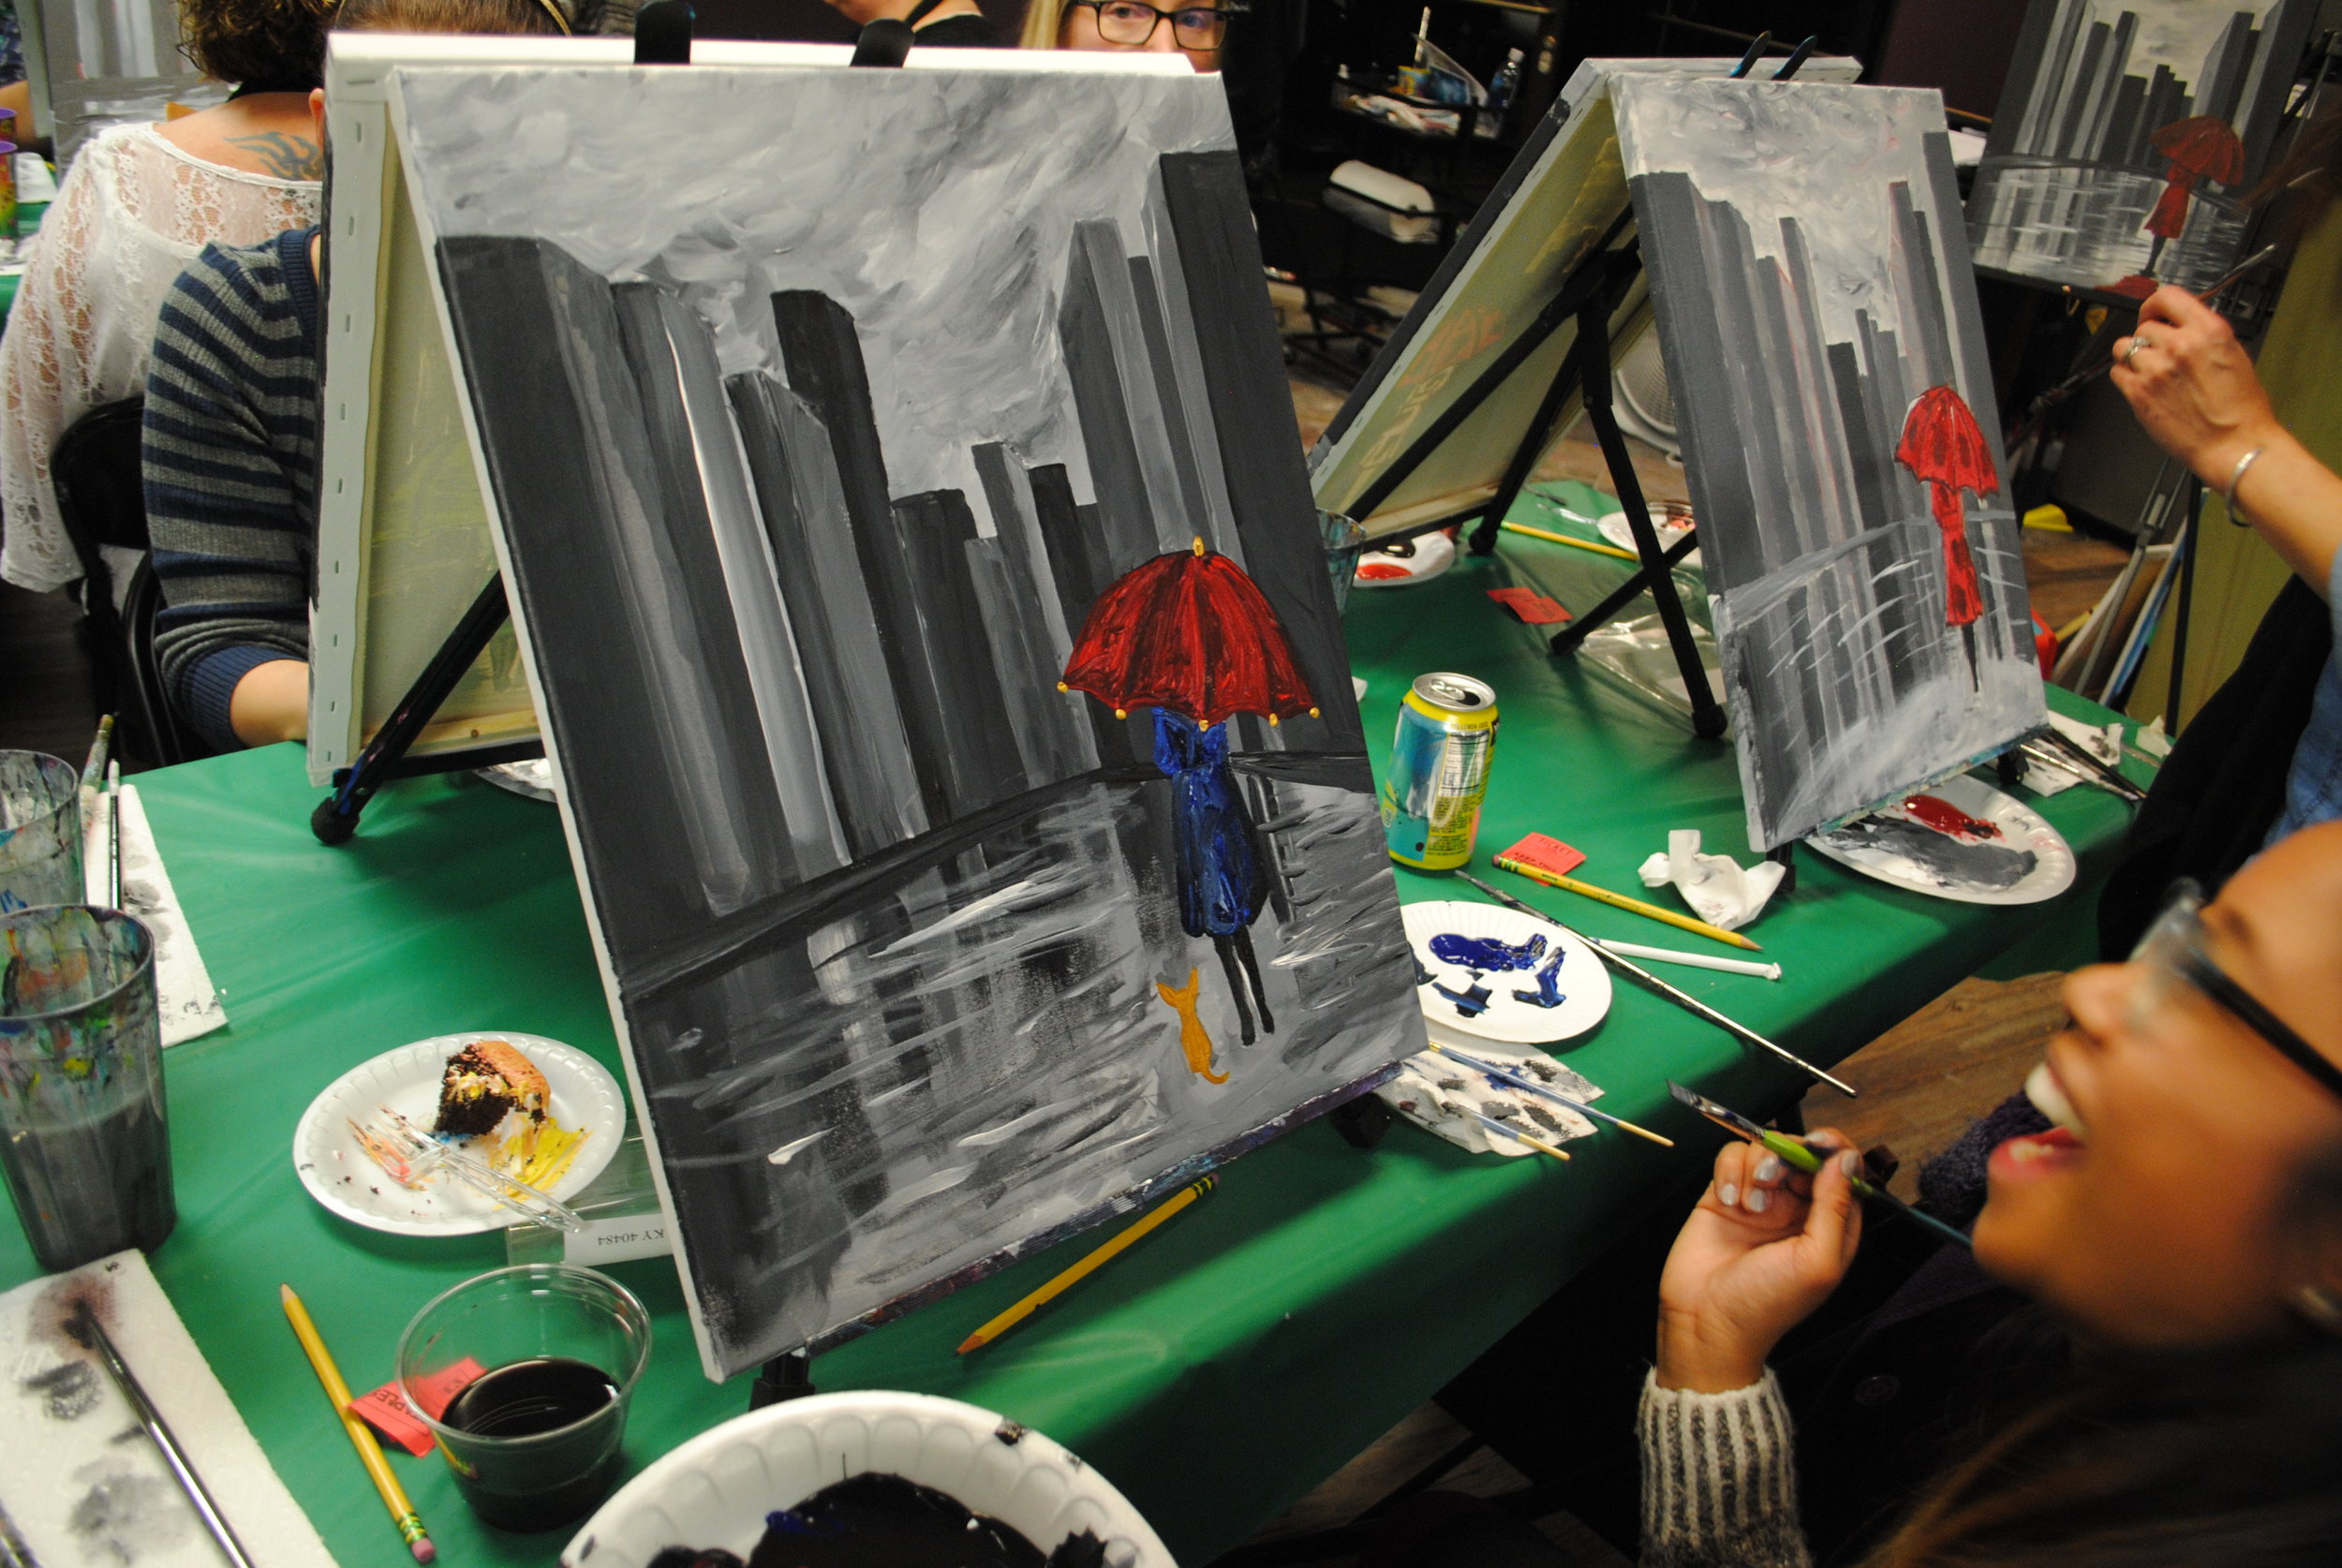 ART 4 JOY - Sip n' Paint - Central Point - What to do in Southern Oregon - Things to do - Events - Girls Night - Family - Kids (27).JPG